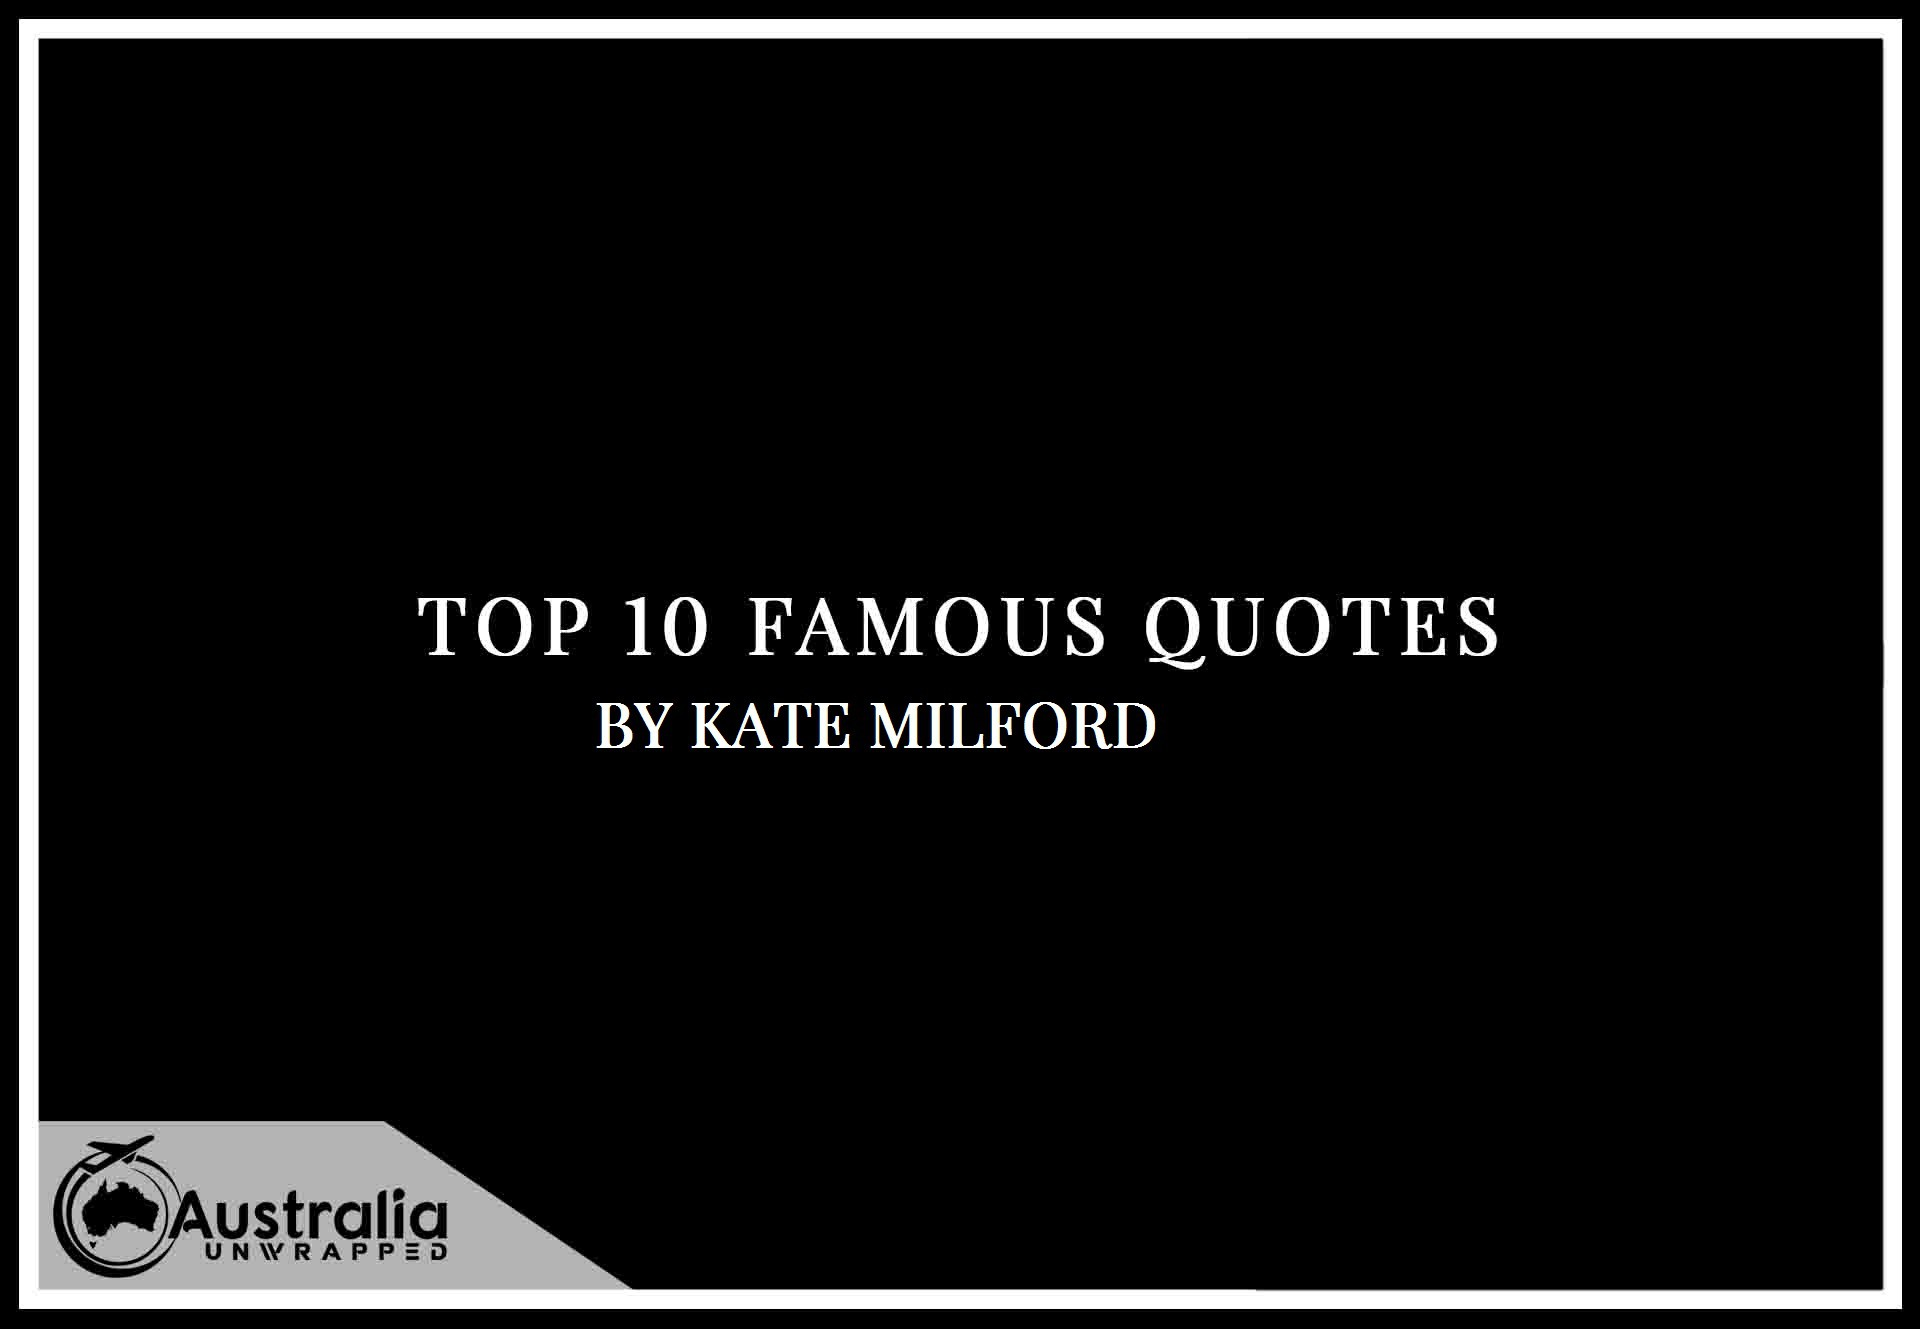 Kate Milford's Top 10 Popular and Famous Quotes